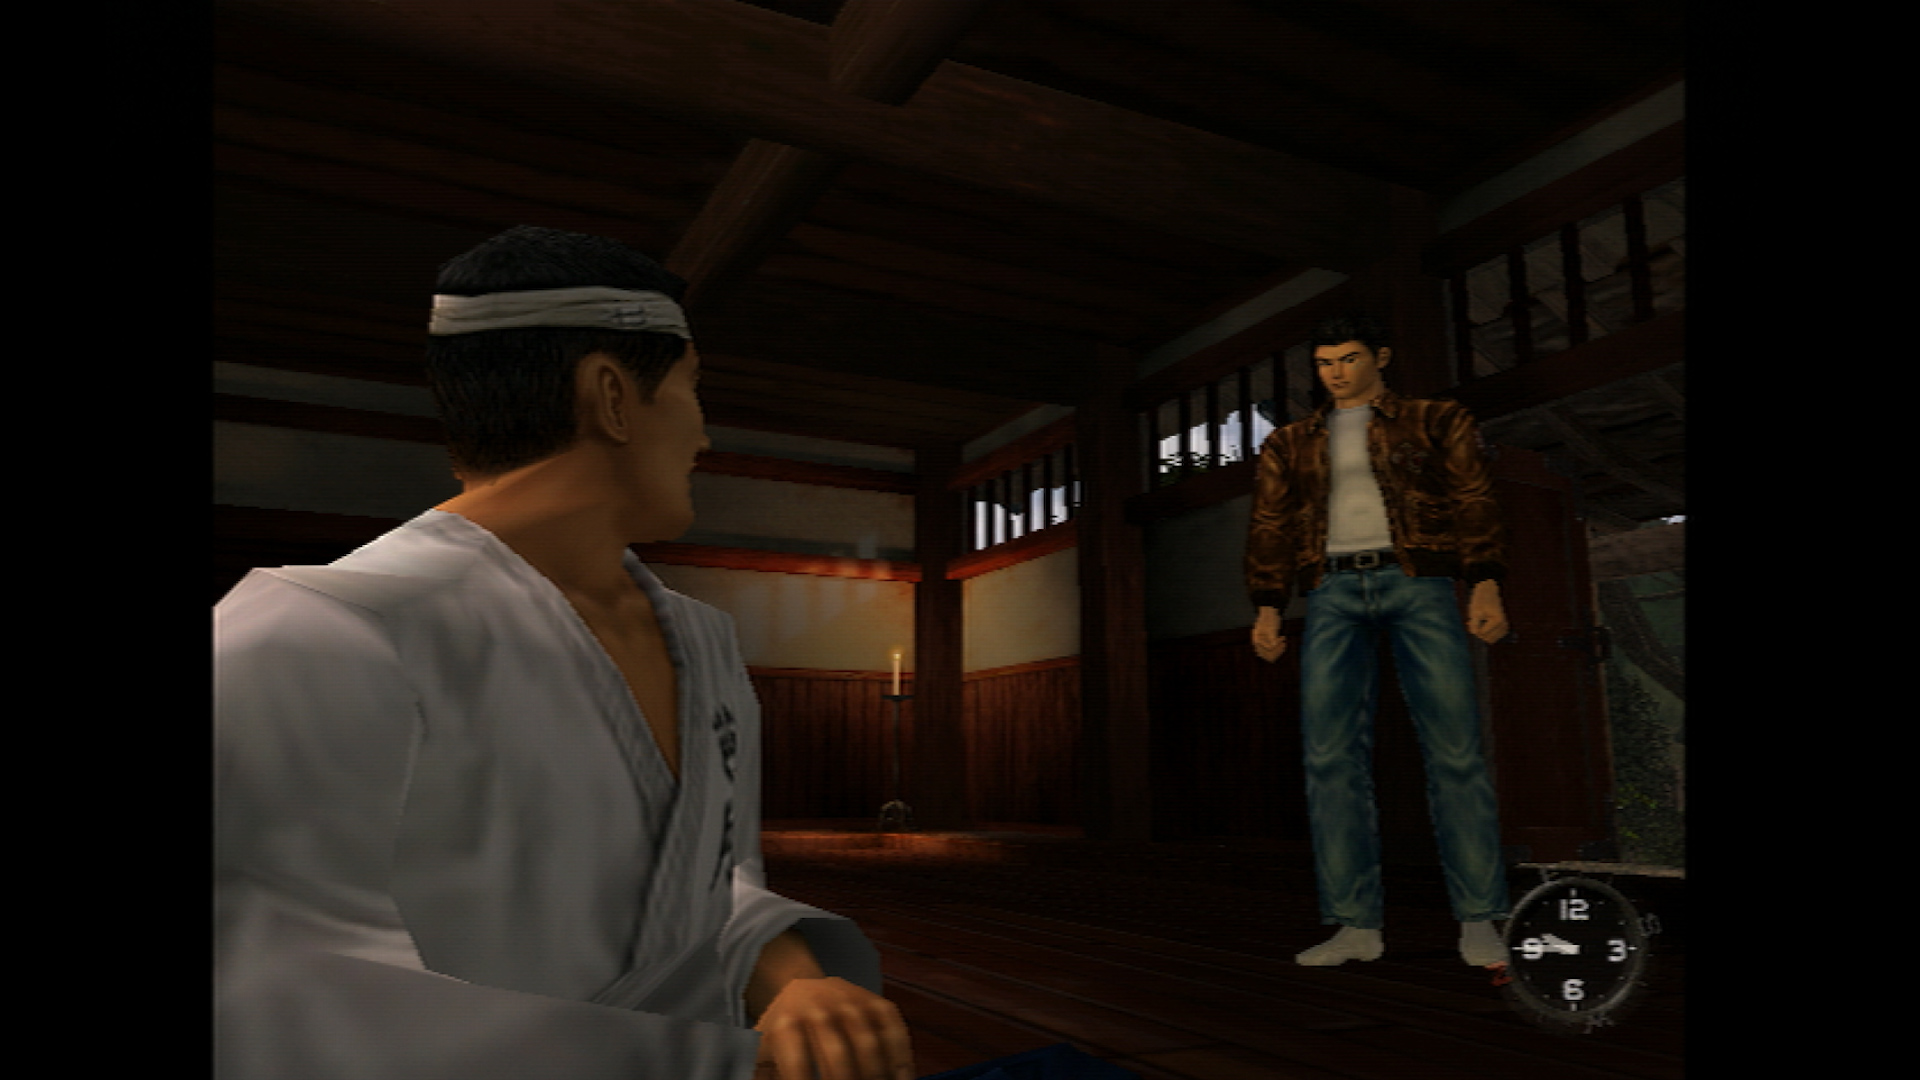 Shenmue's HD remasters analysed: enhancements are sparse but the